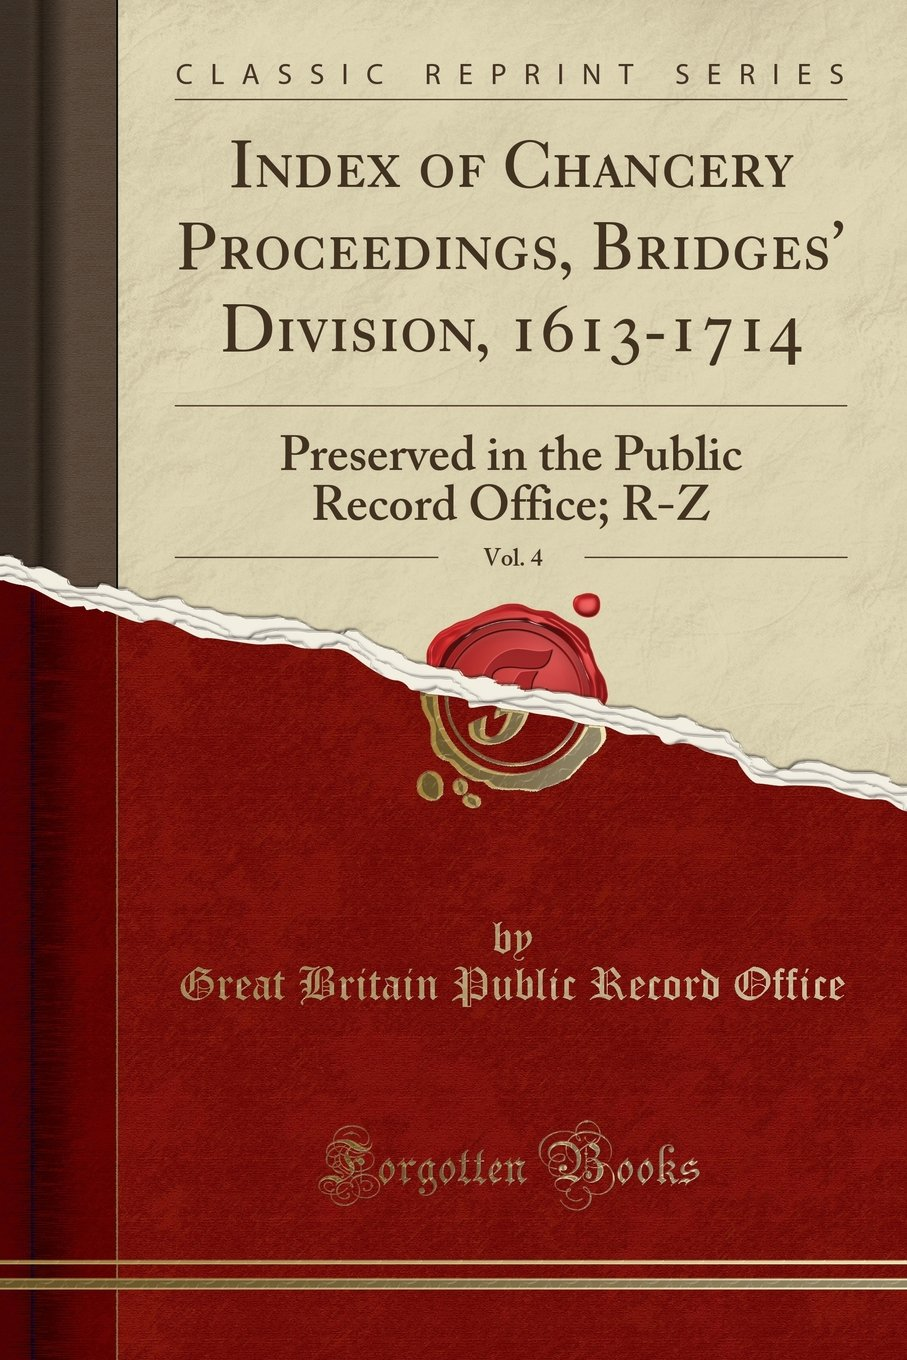 Index of Chancery Proceedings, Bridges' Division, 1613-1714, Vol. 4: Preserved in the Public Record Office; R-Z (Classic Reprint) PDF